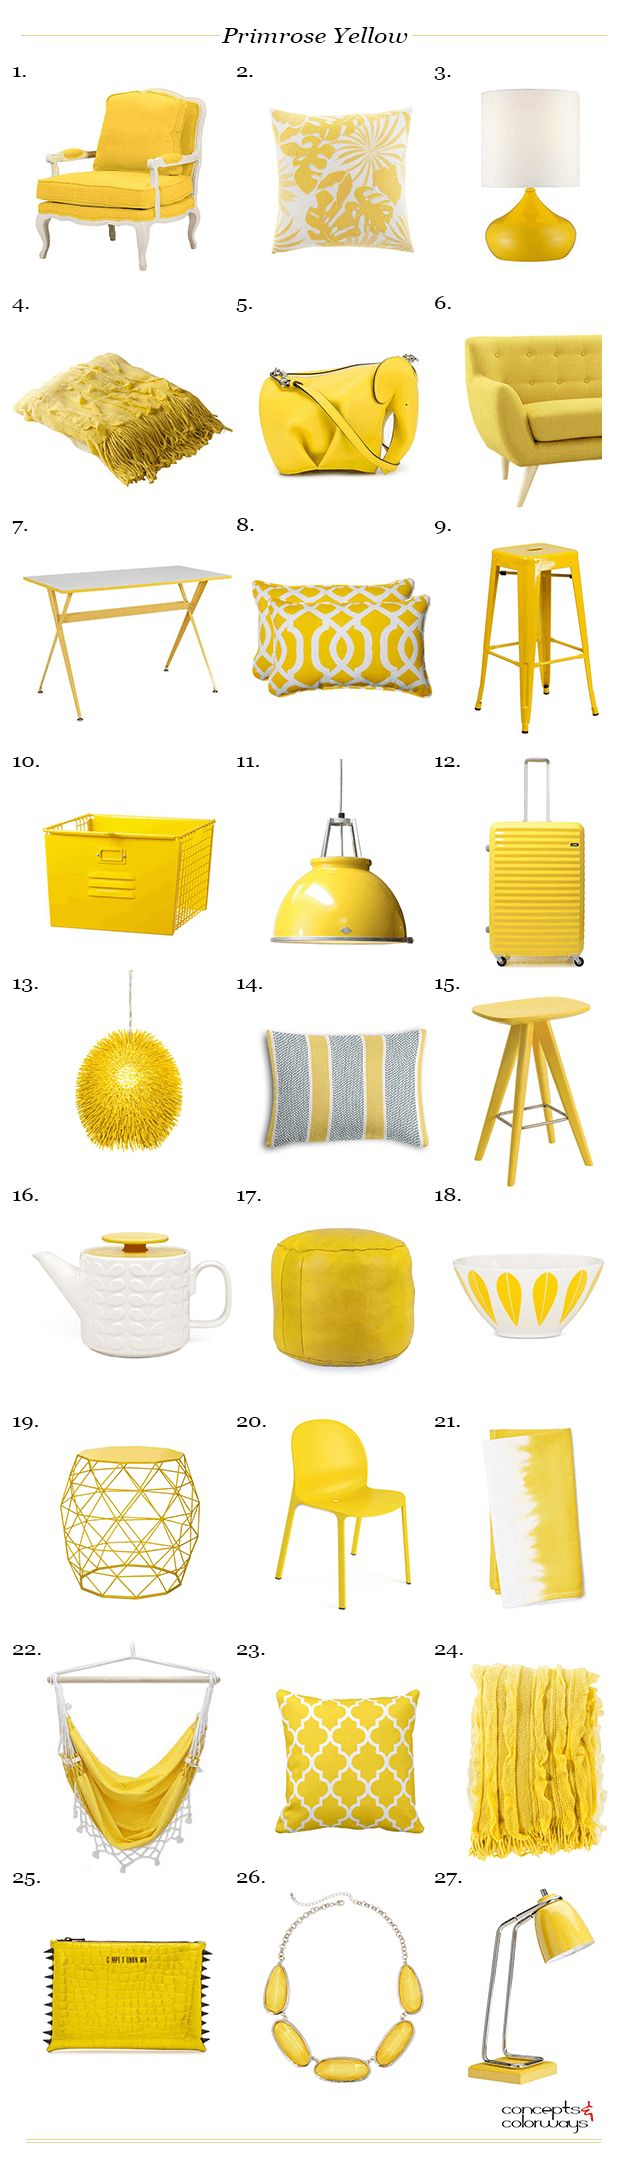 best 20+ yellow interior ideas on pinterest | yellow apartment